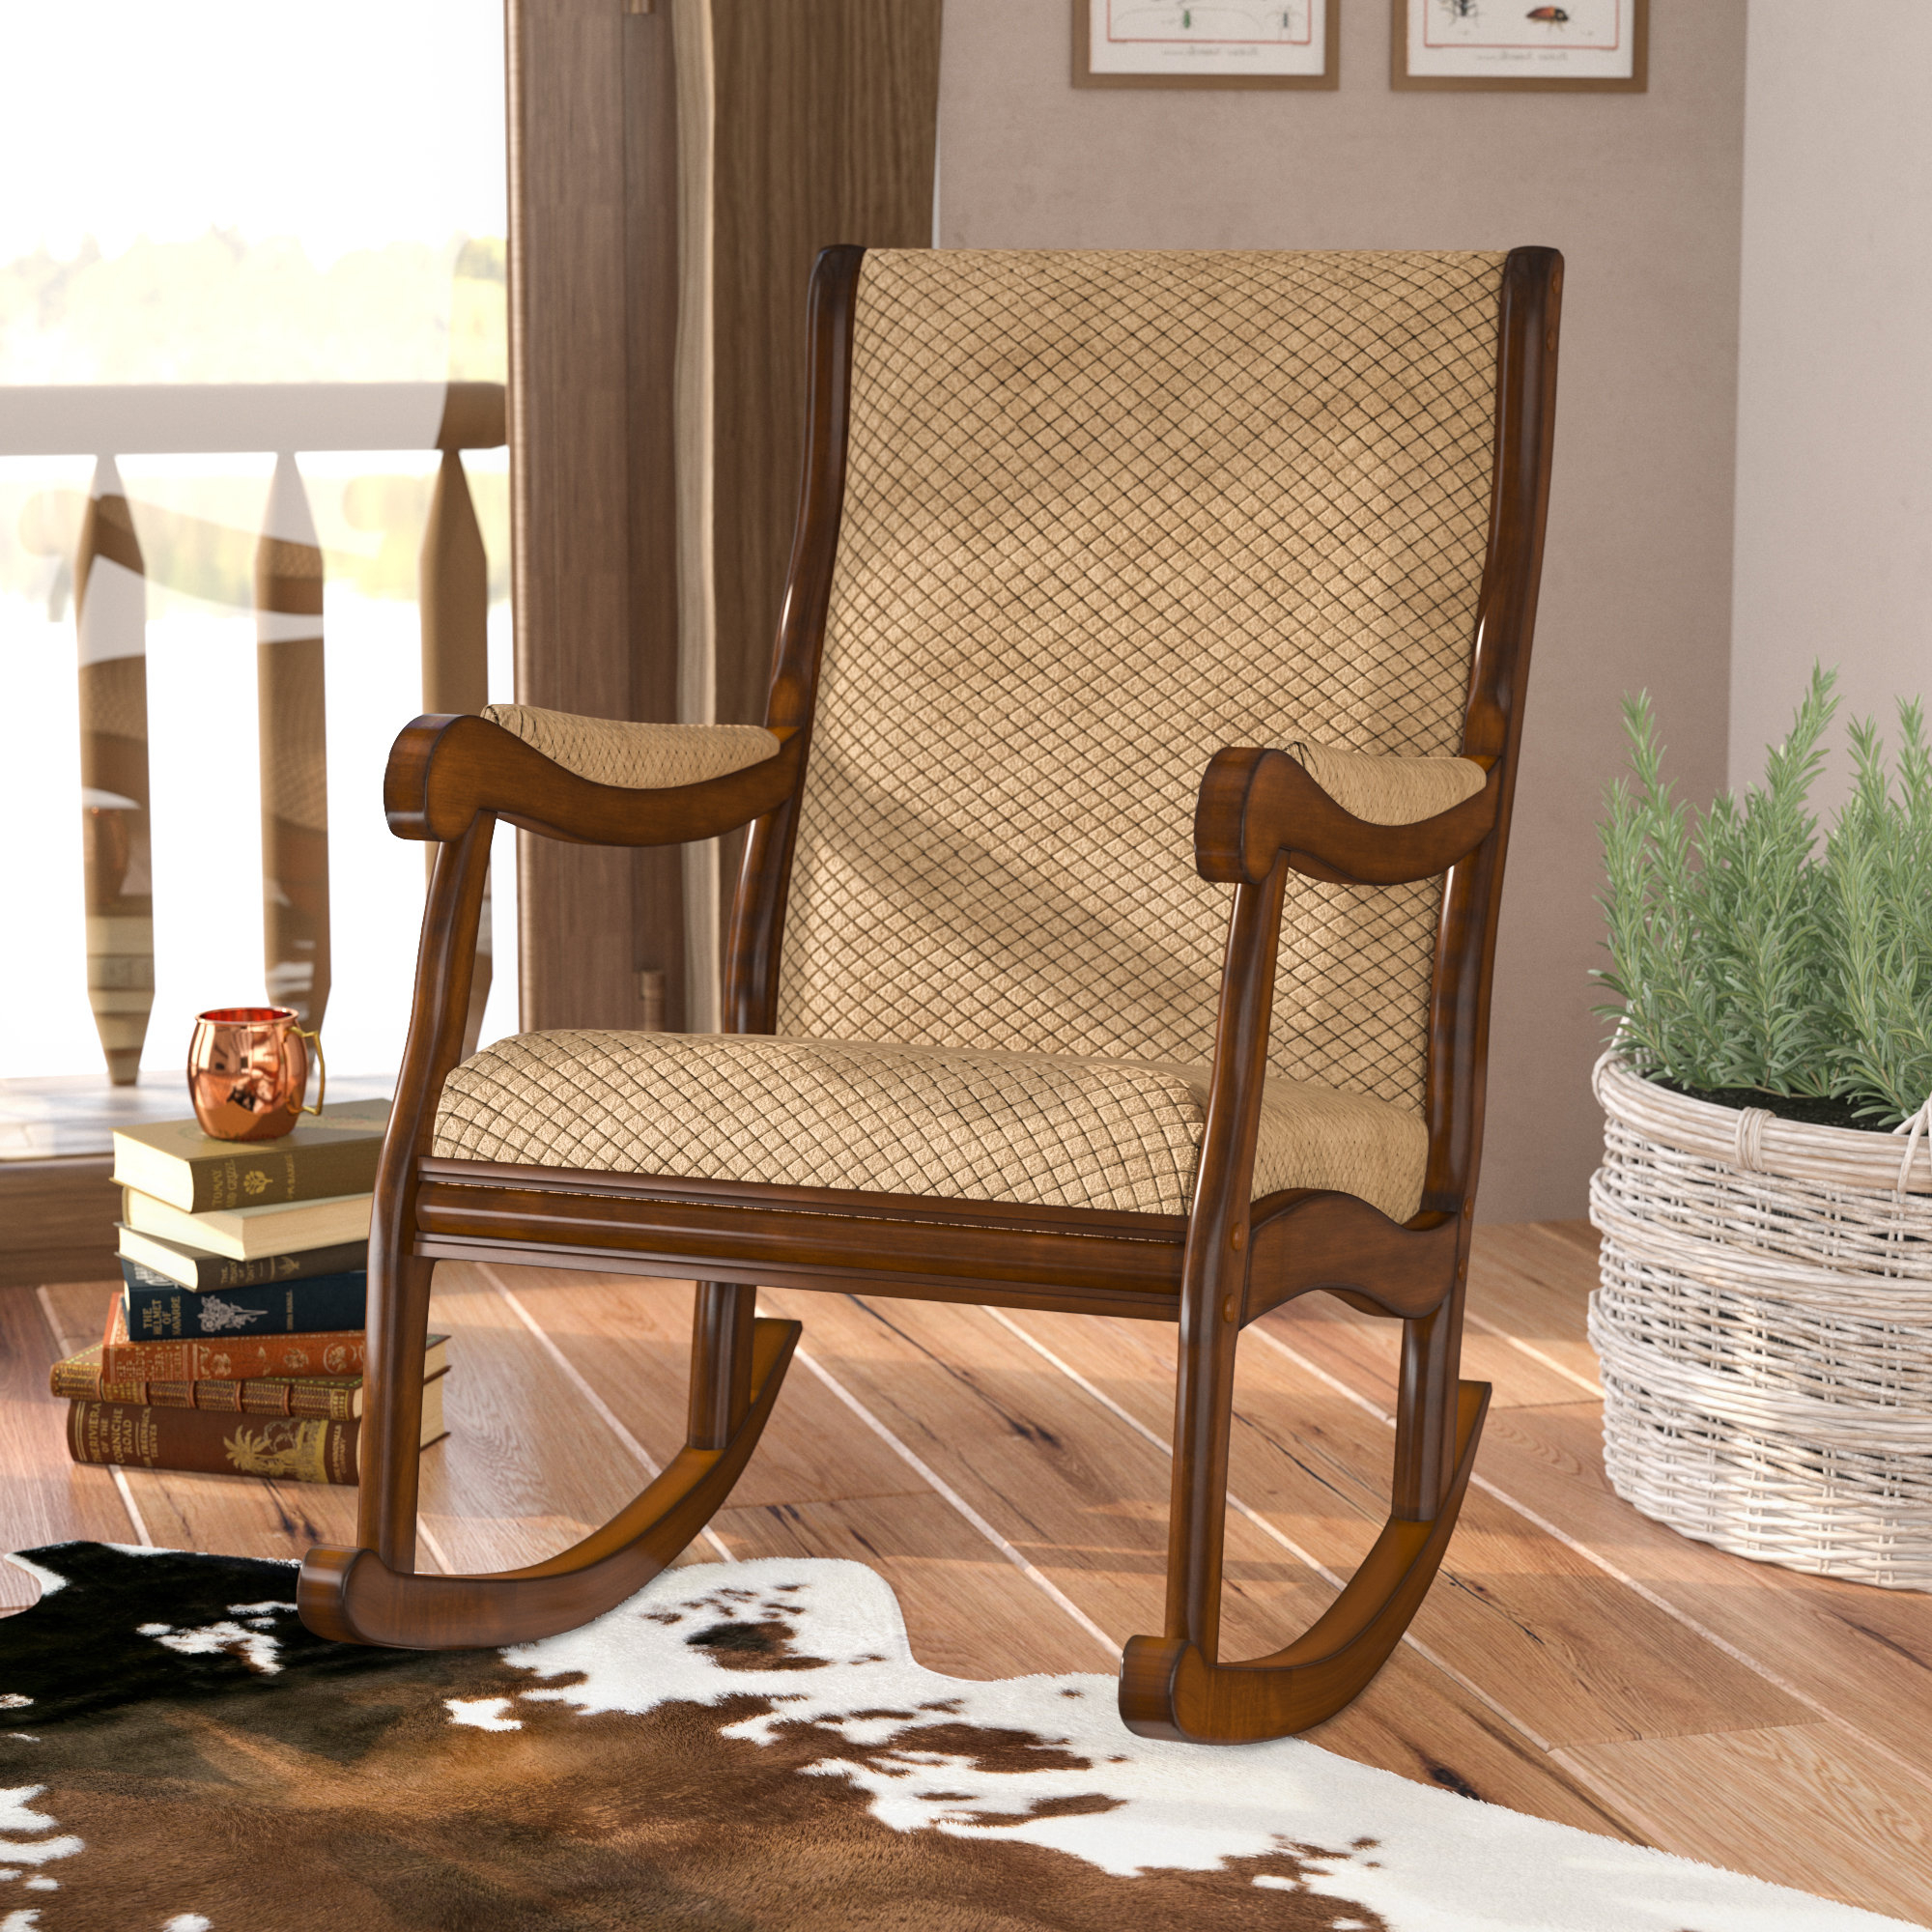 Berg Rocking Chair Intended For Faux Leather Upholstered Wooden Rocking Chairs With Looped Arms, Brown (#1 of 20)